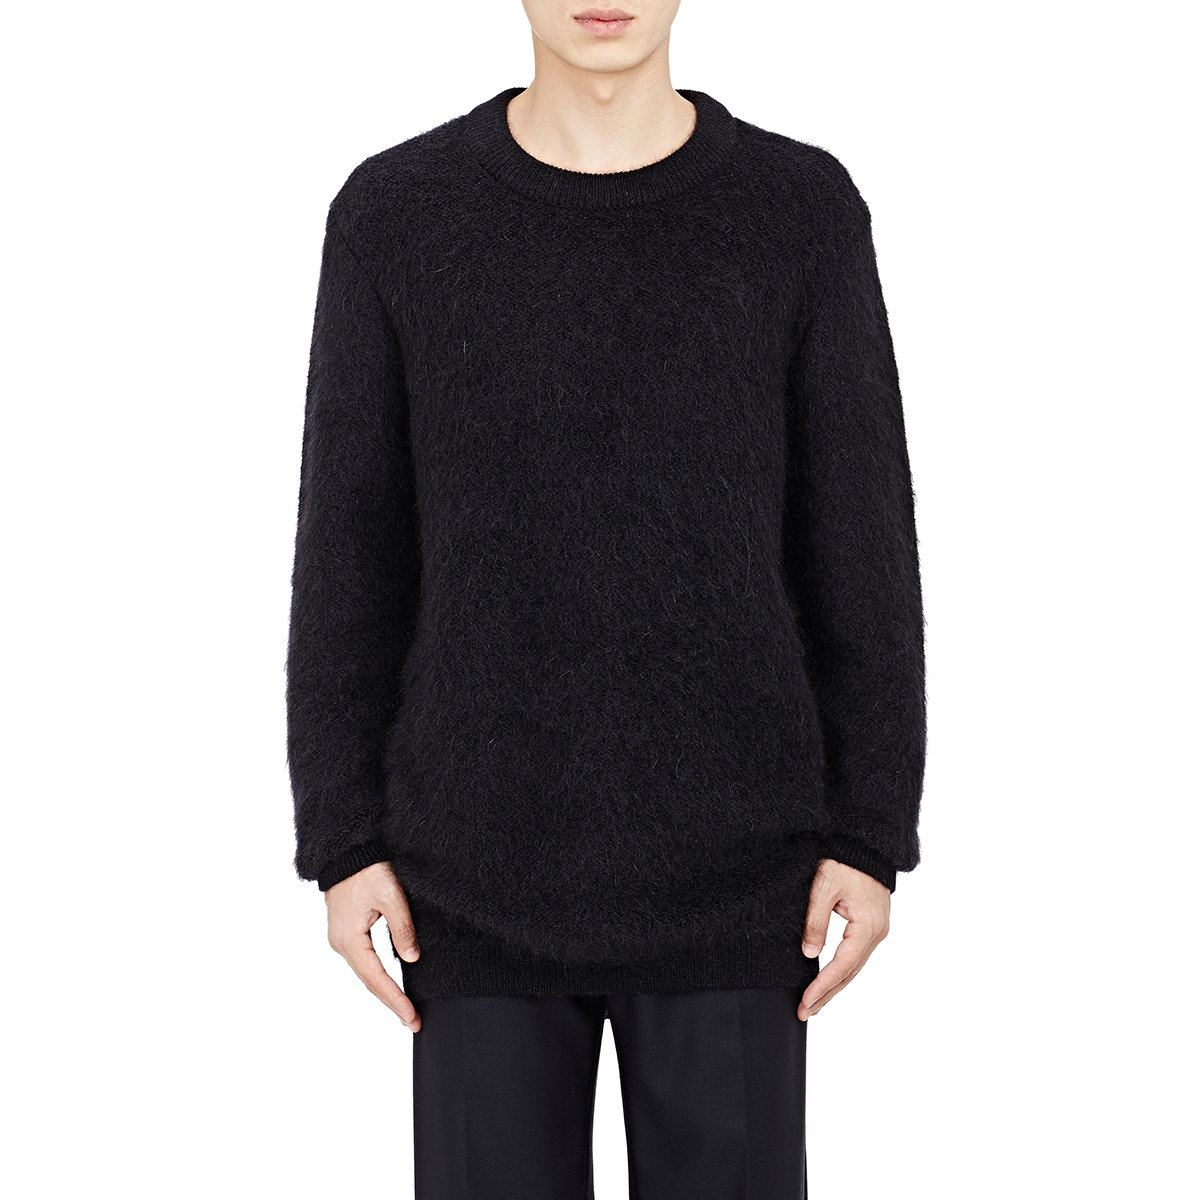 acne studios mohair jerry sweater in black for men lyst. Black Bedroom Furniture Sets. Home Design Ideas